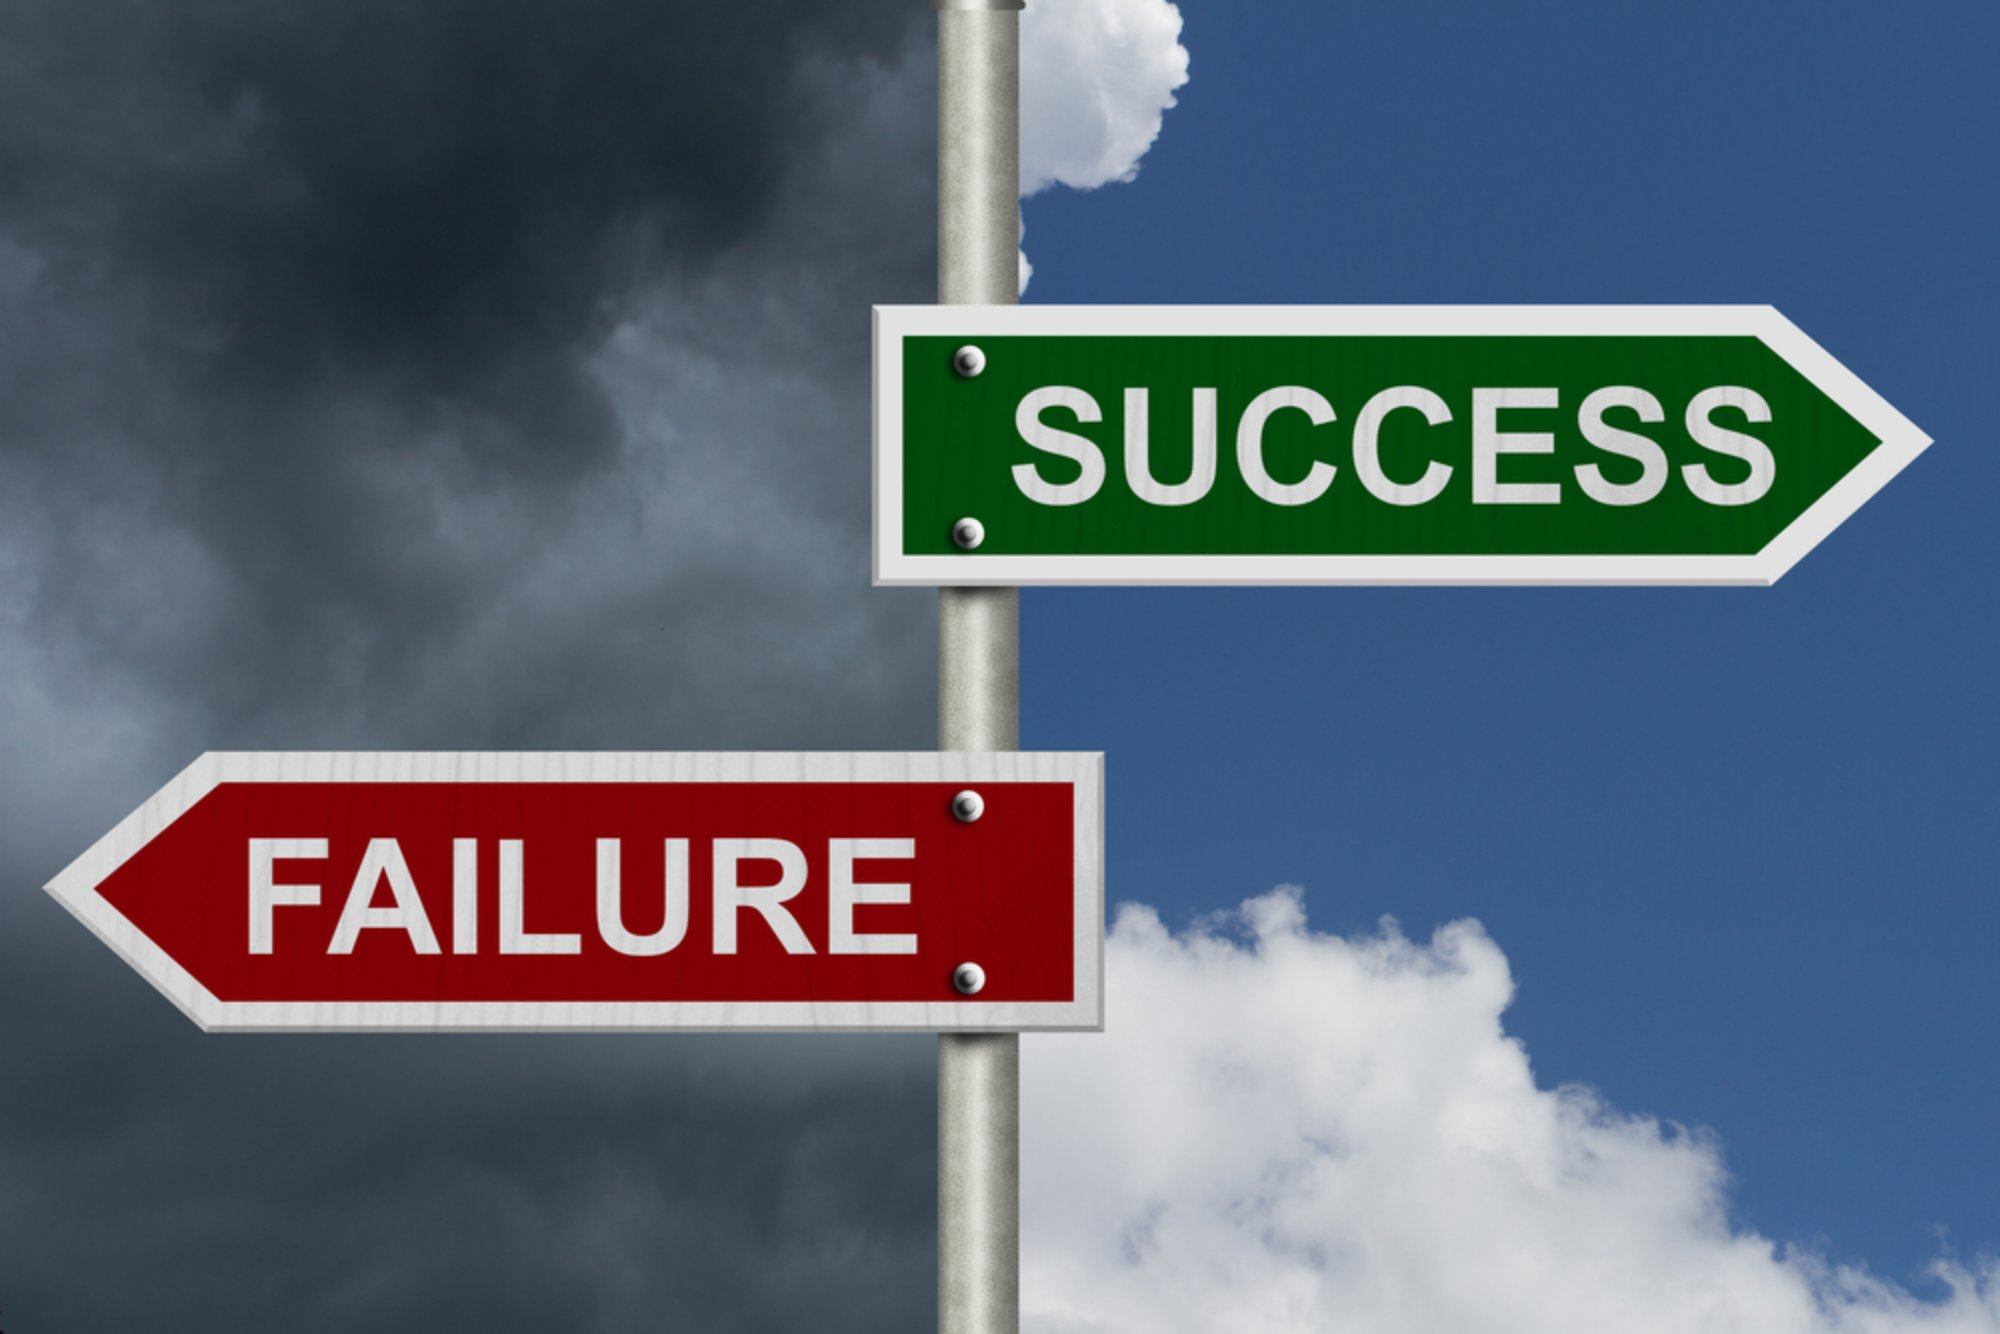 Guarantee BI Success: Why Self-Serve BI Initiatives Fail - Image 1